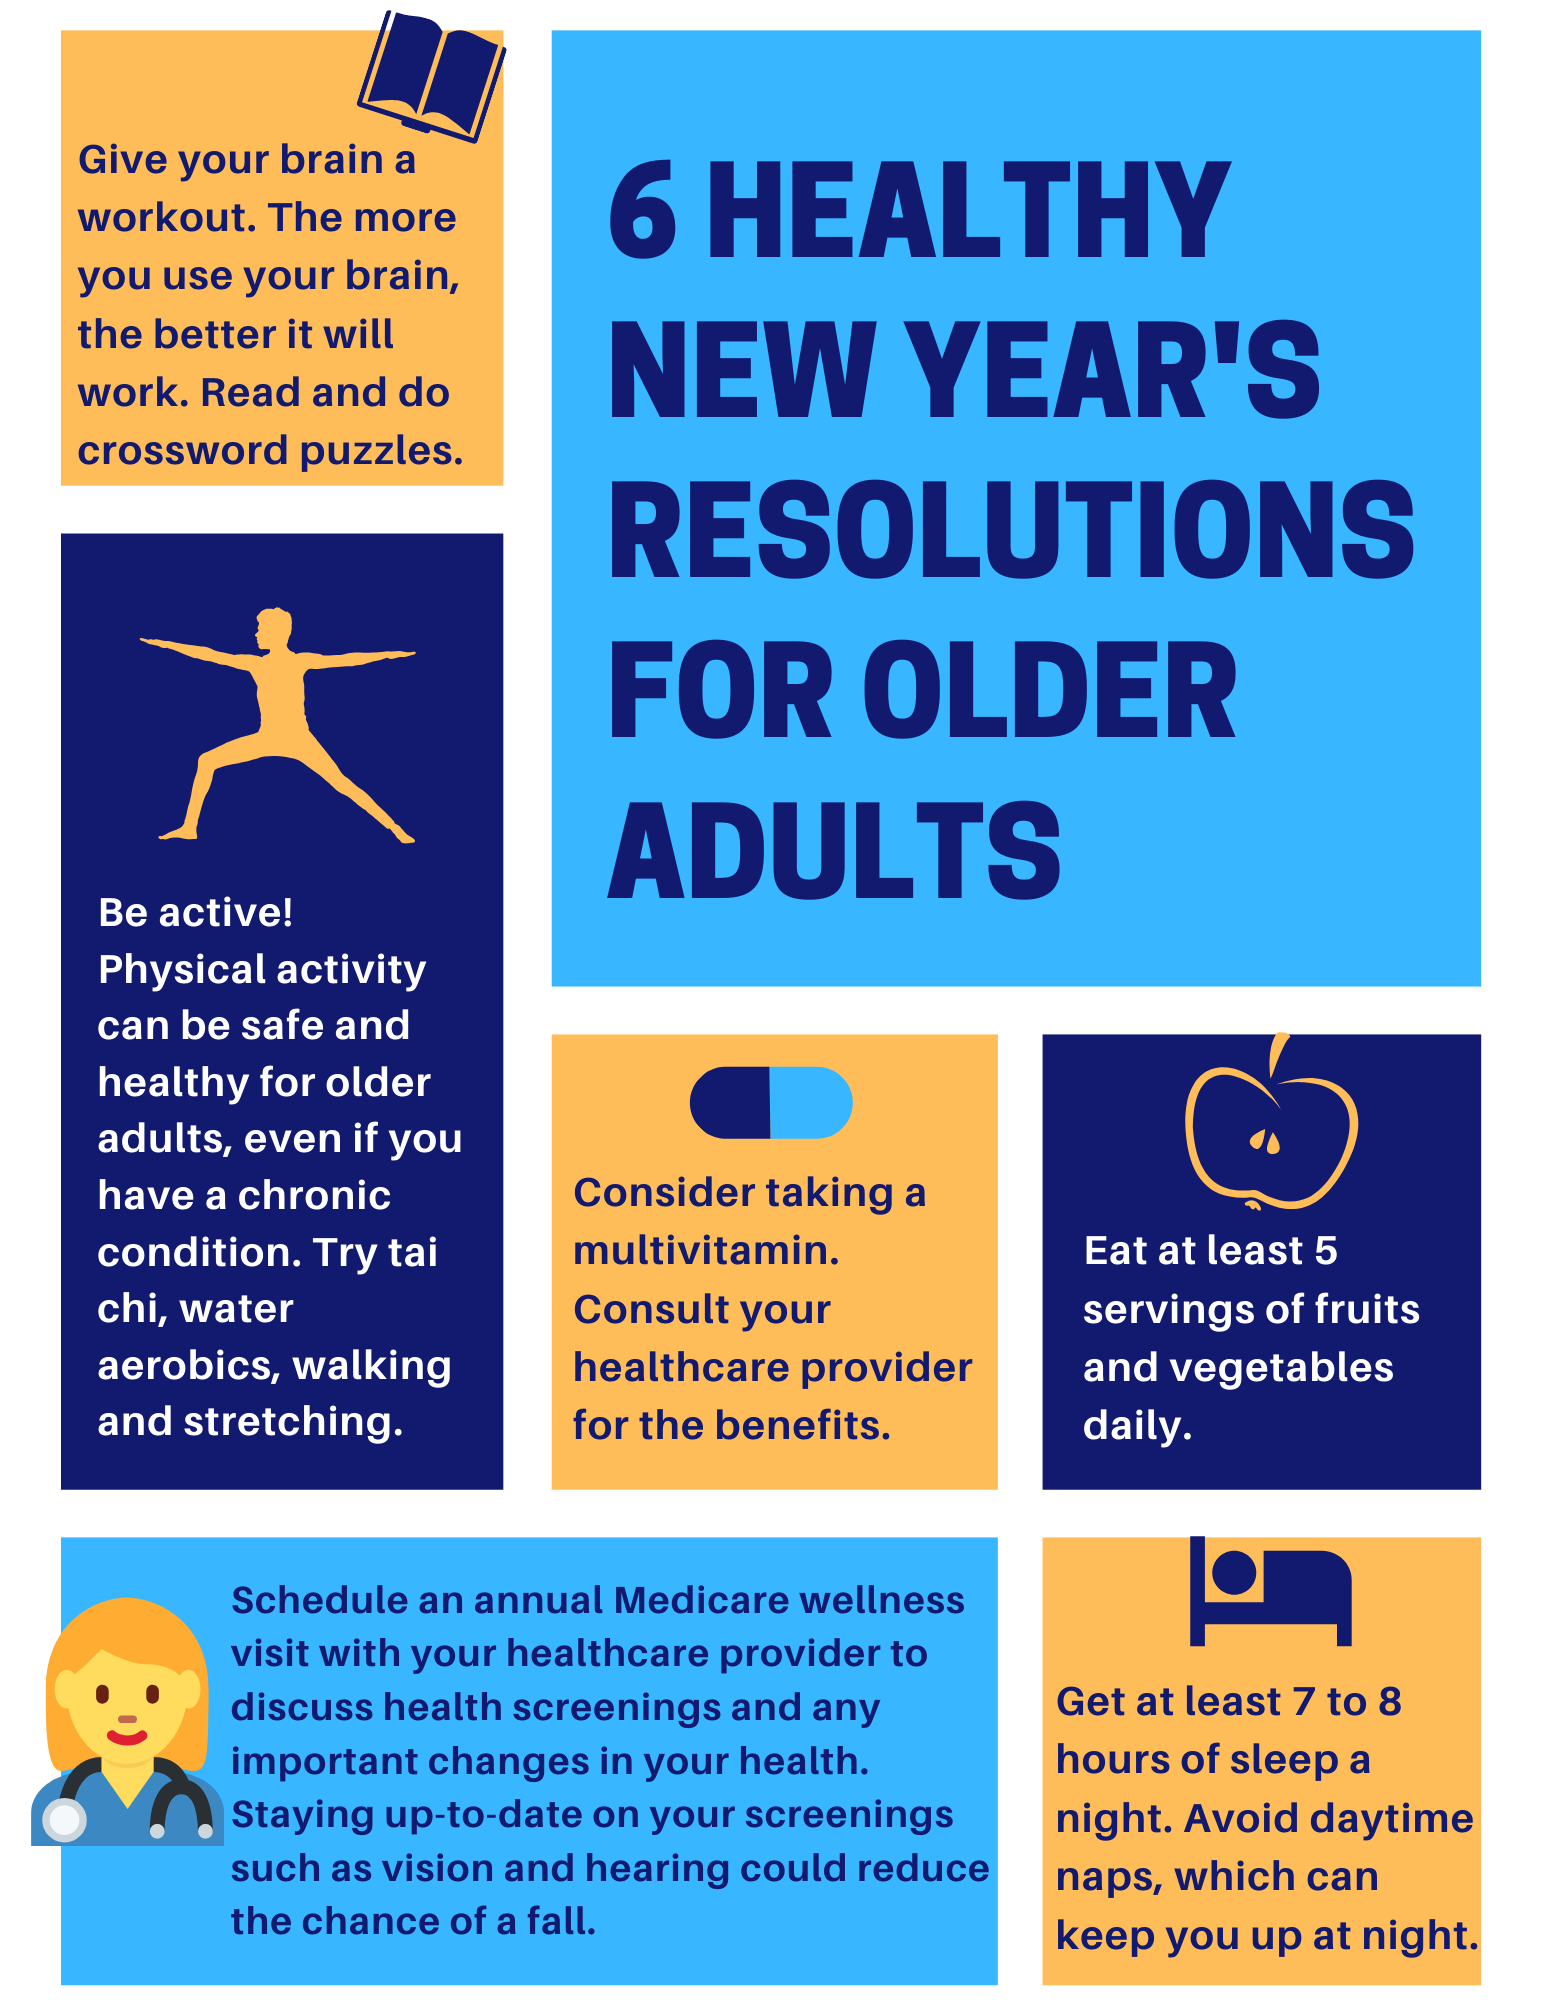 6 Healthy New Year's Resolutions for Older Adults